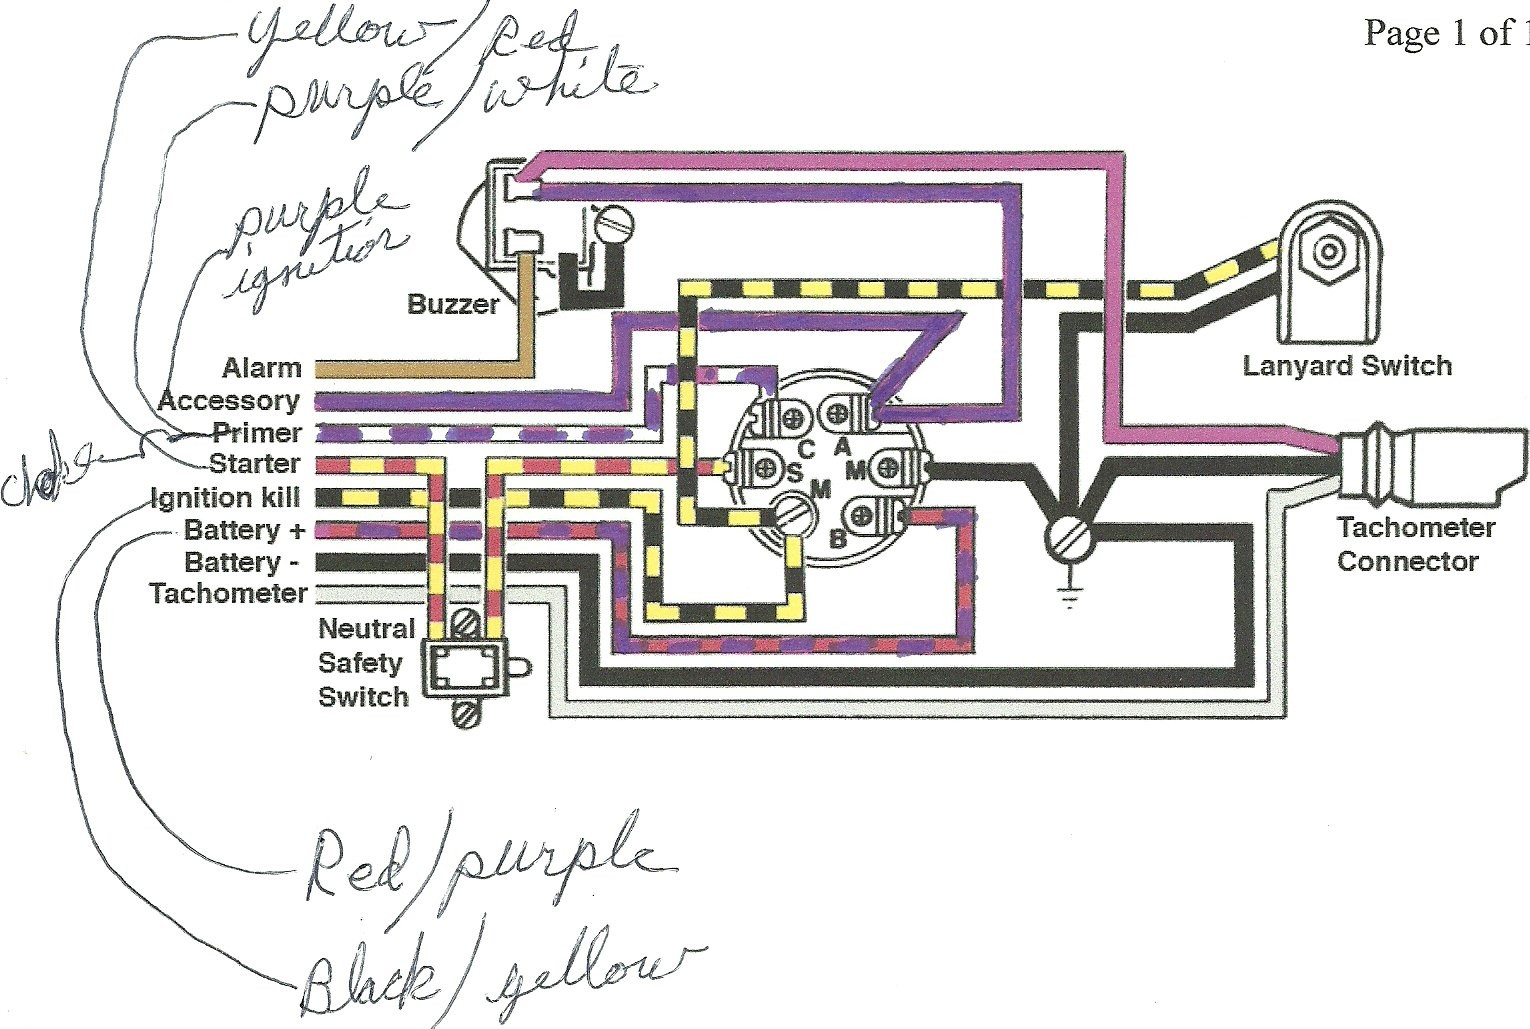 Mercury Outboard Wiring Diagram Schematic El Start To And Mercury Marine Ignition Switch Wiring Ford Ignition D on 1974 Mercury Outboard Ignition Switch Wiring Diagram